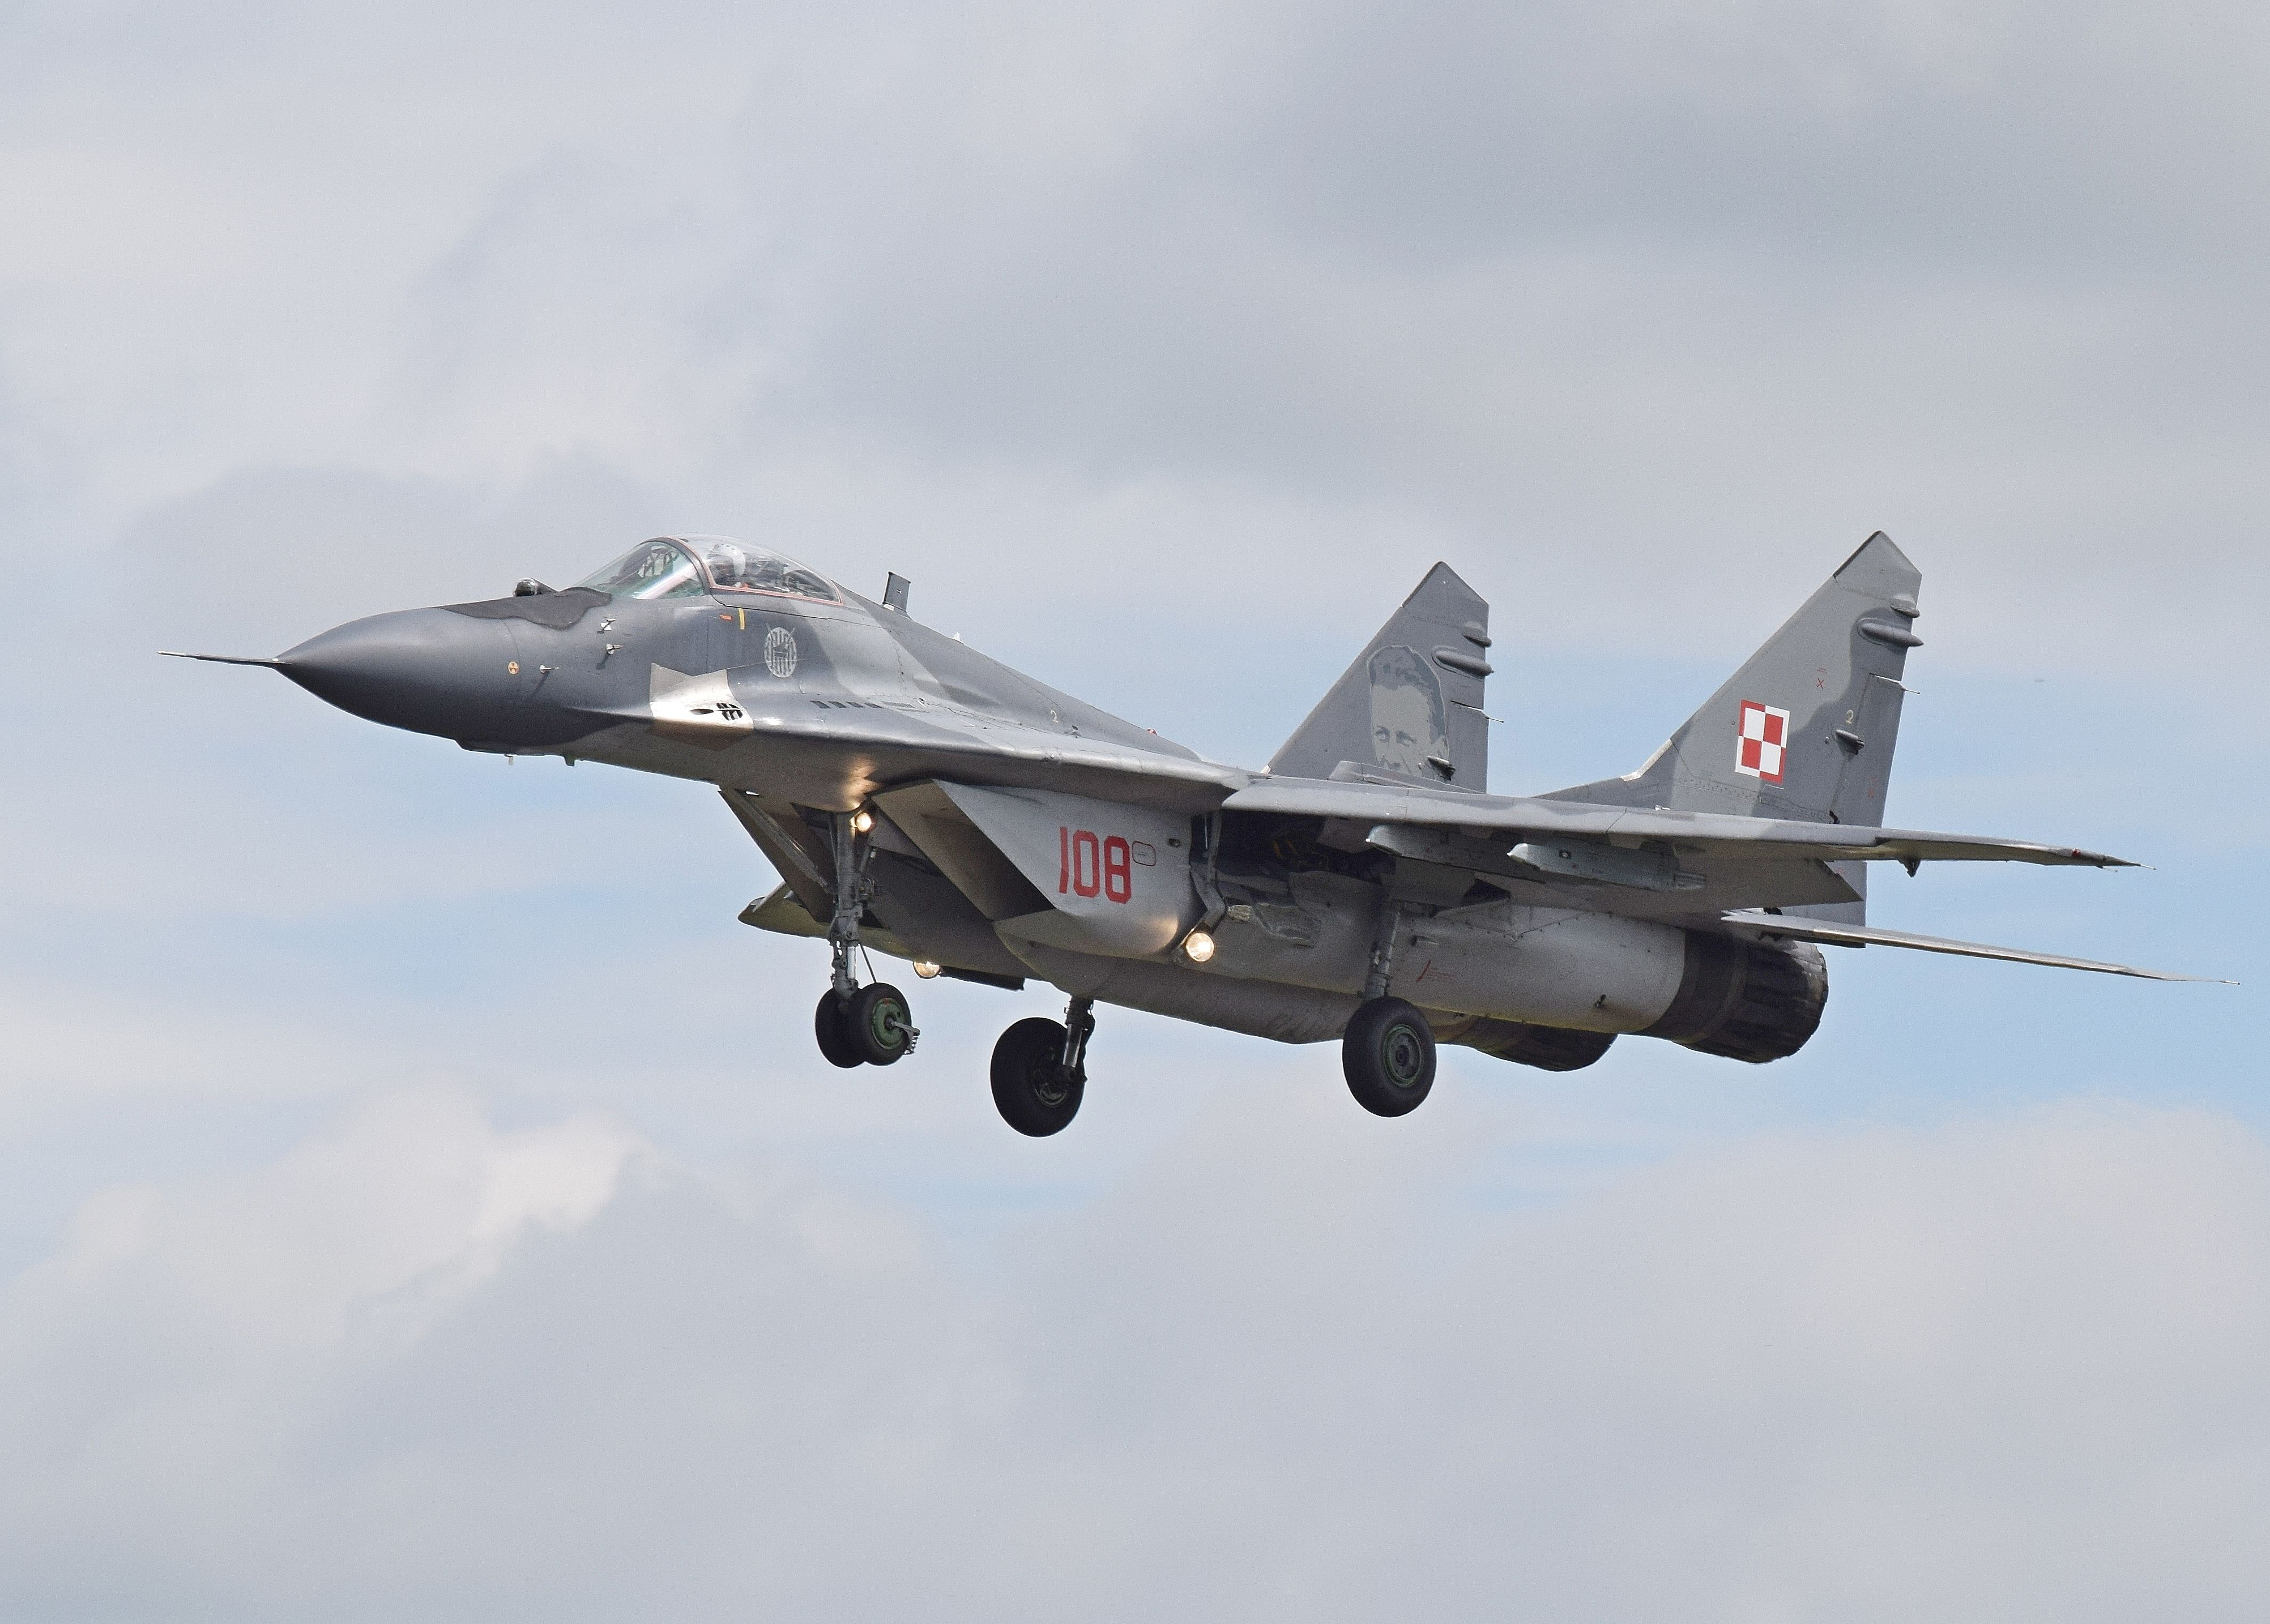 File:MiG-29 (code 108) of the Polish Air Force arrives